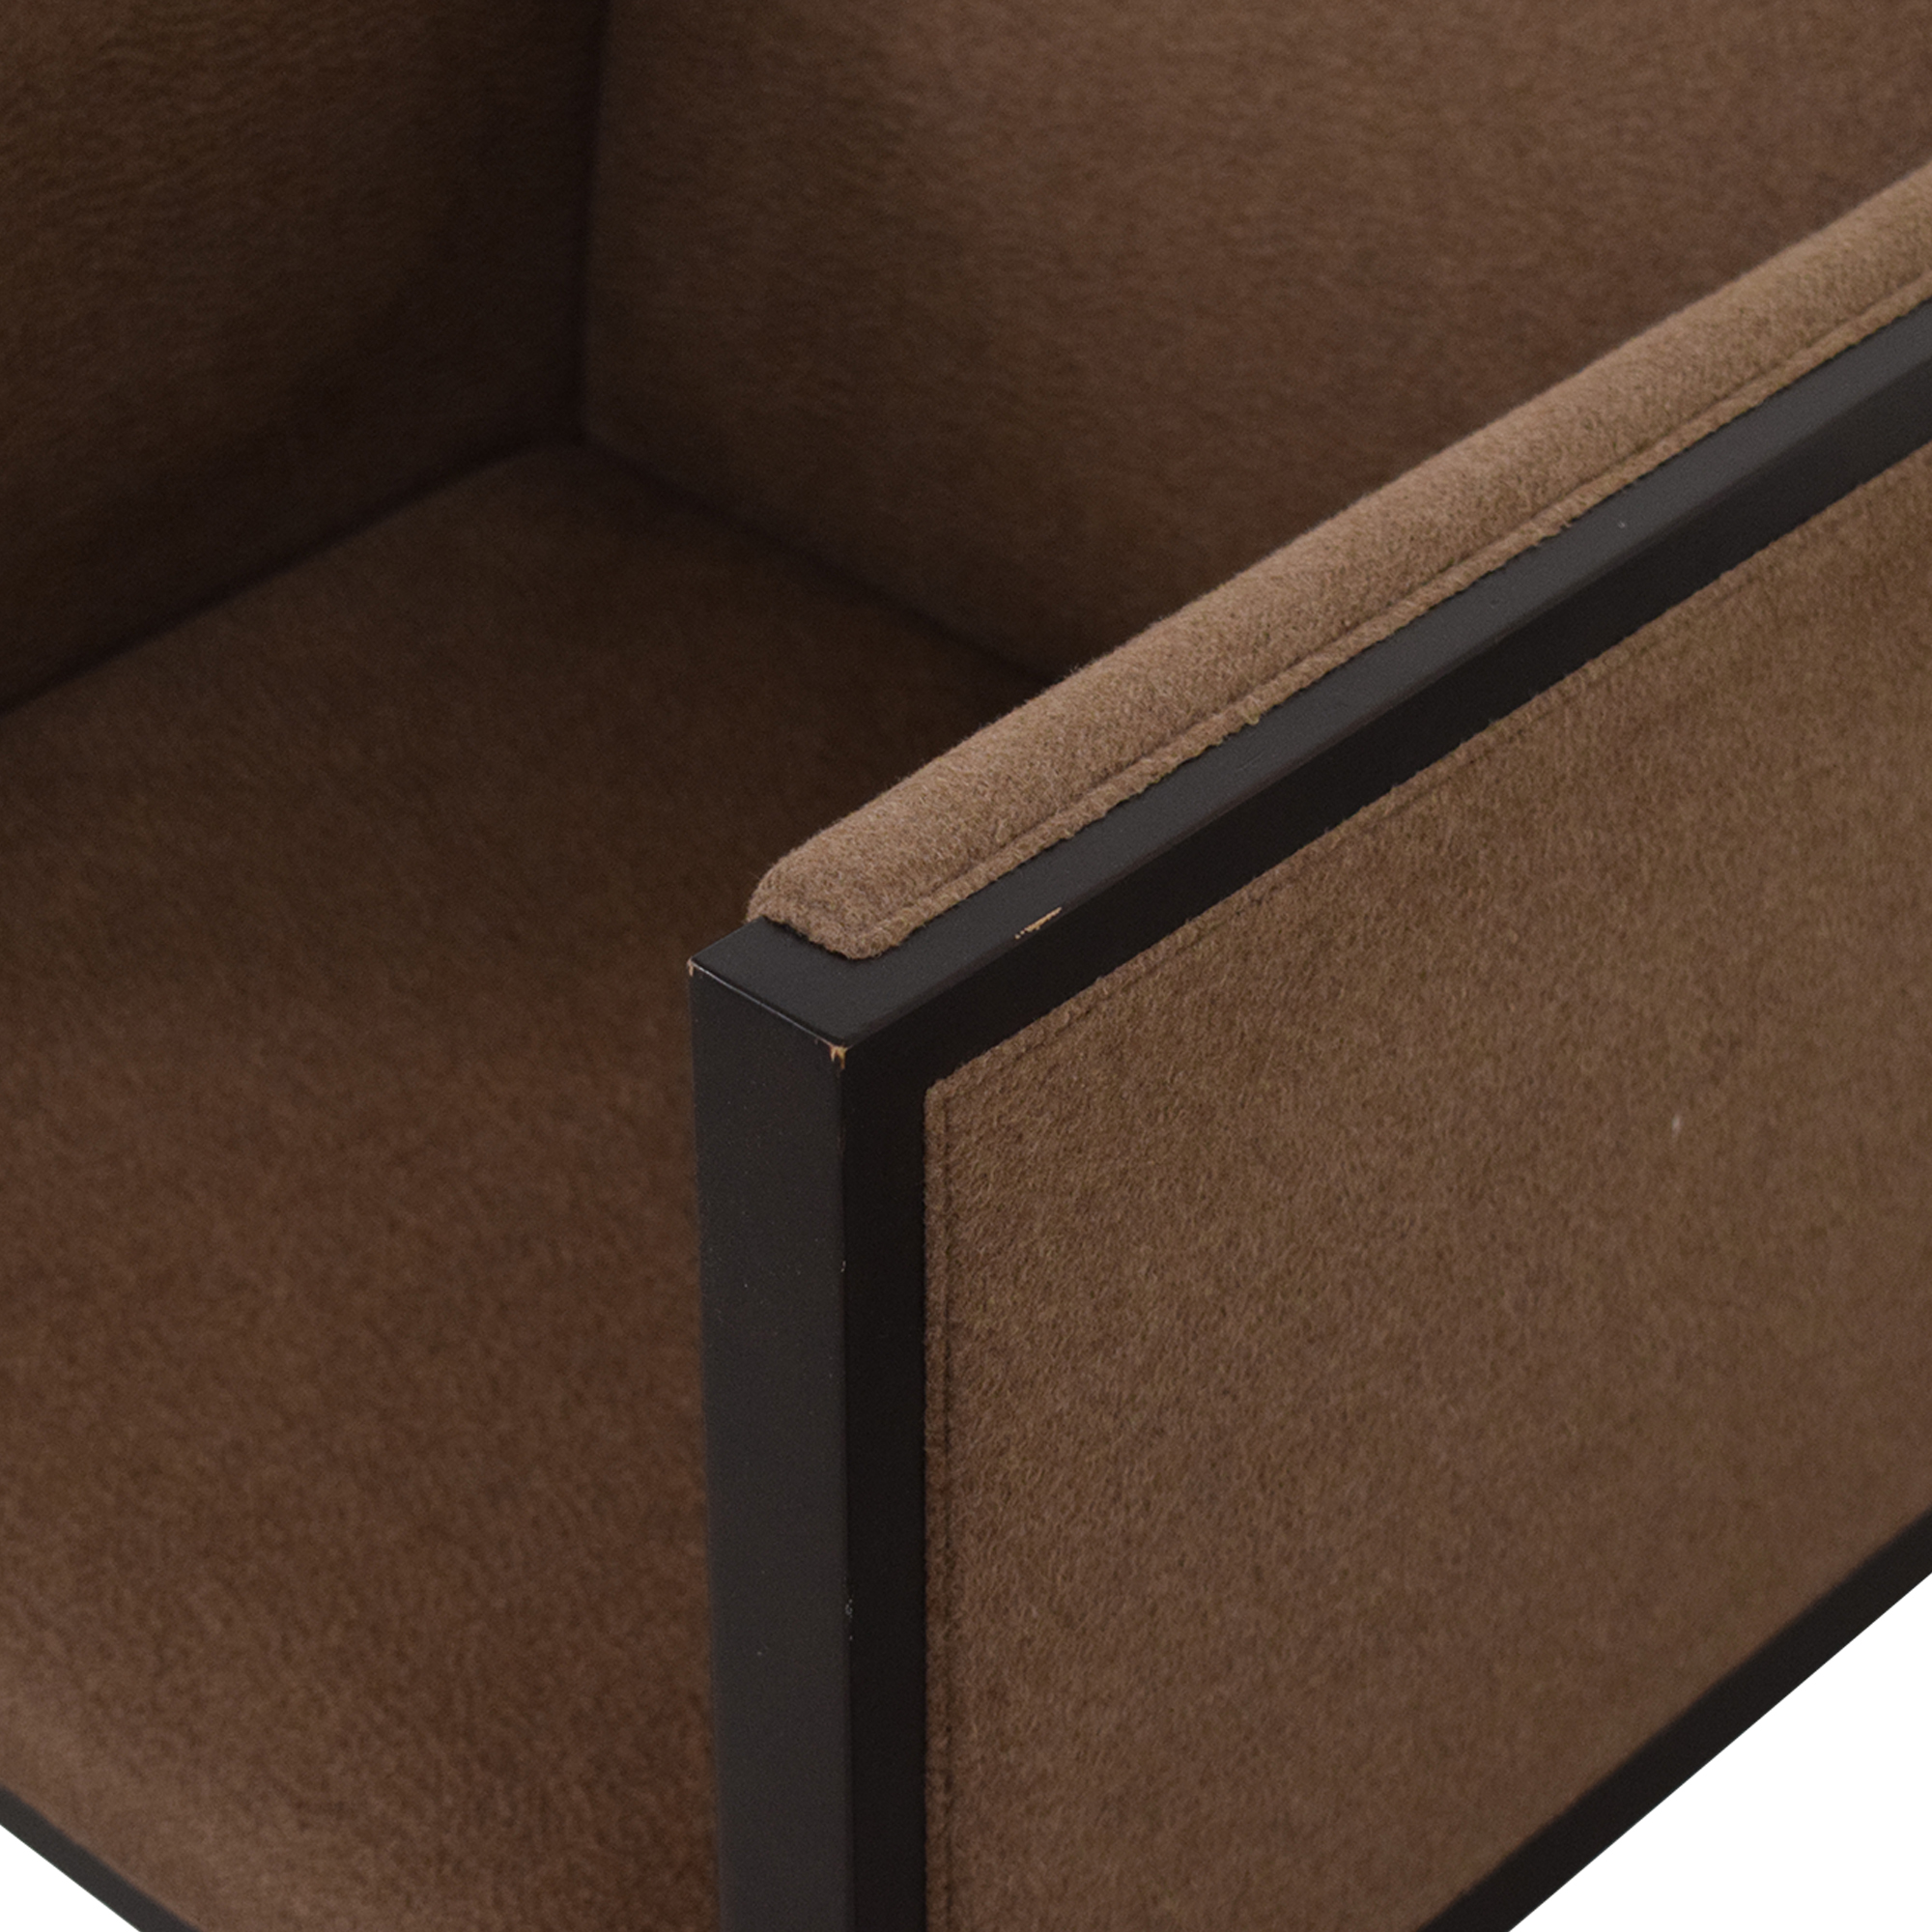 Hudson Furniture & Bedding Hudson Furniture & Bedding Tuxedo Accent Chair